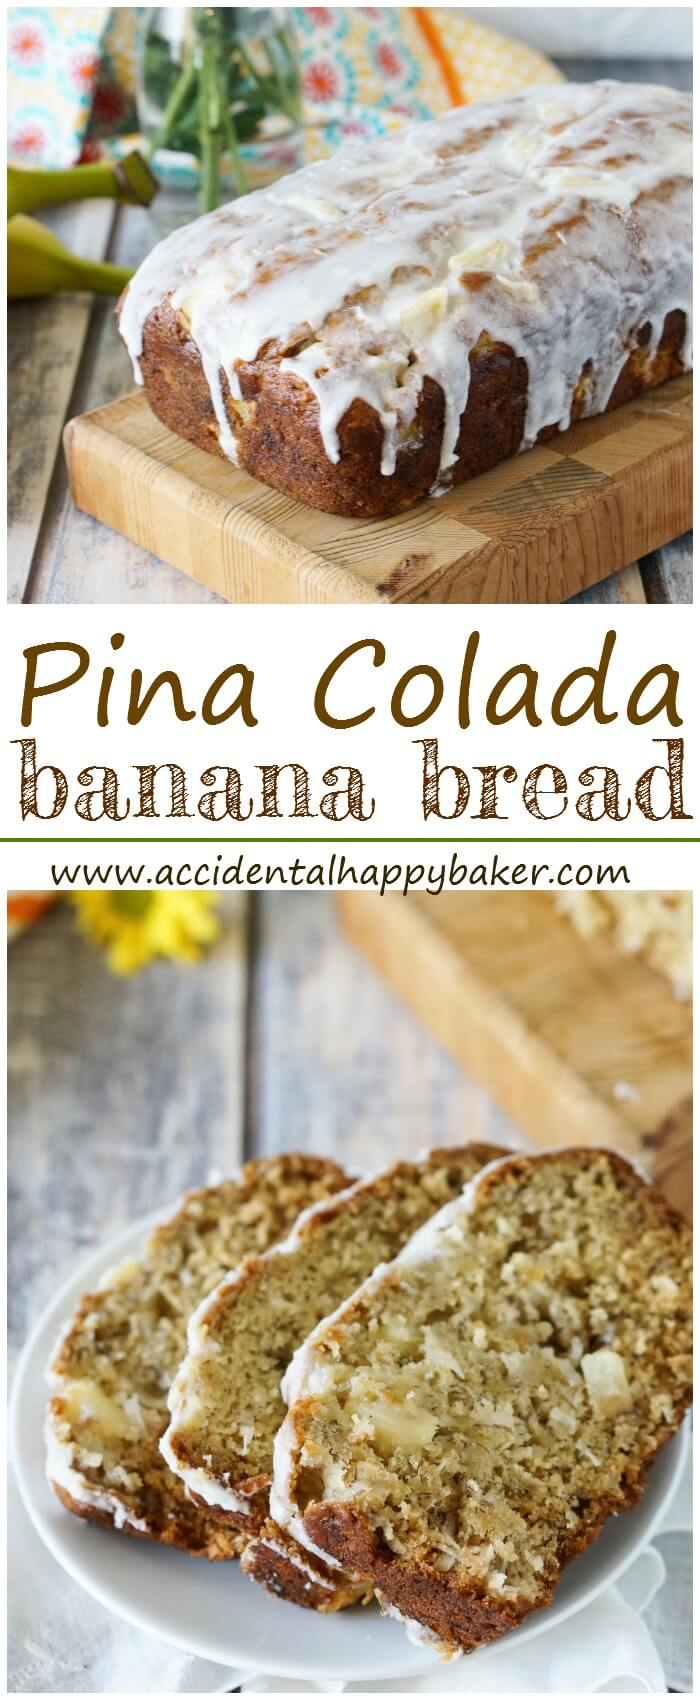 Pina-colada-banana-bread-pin